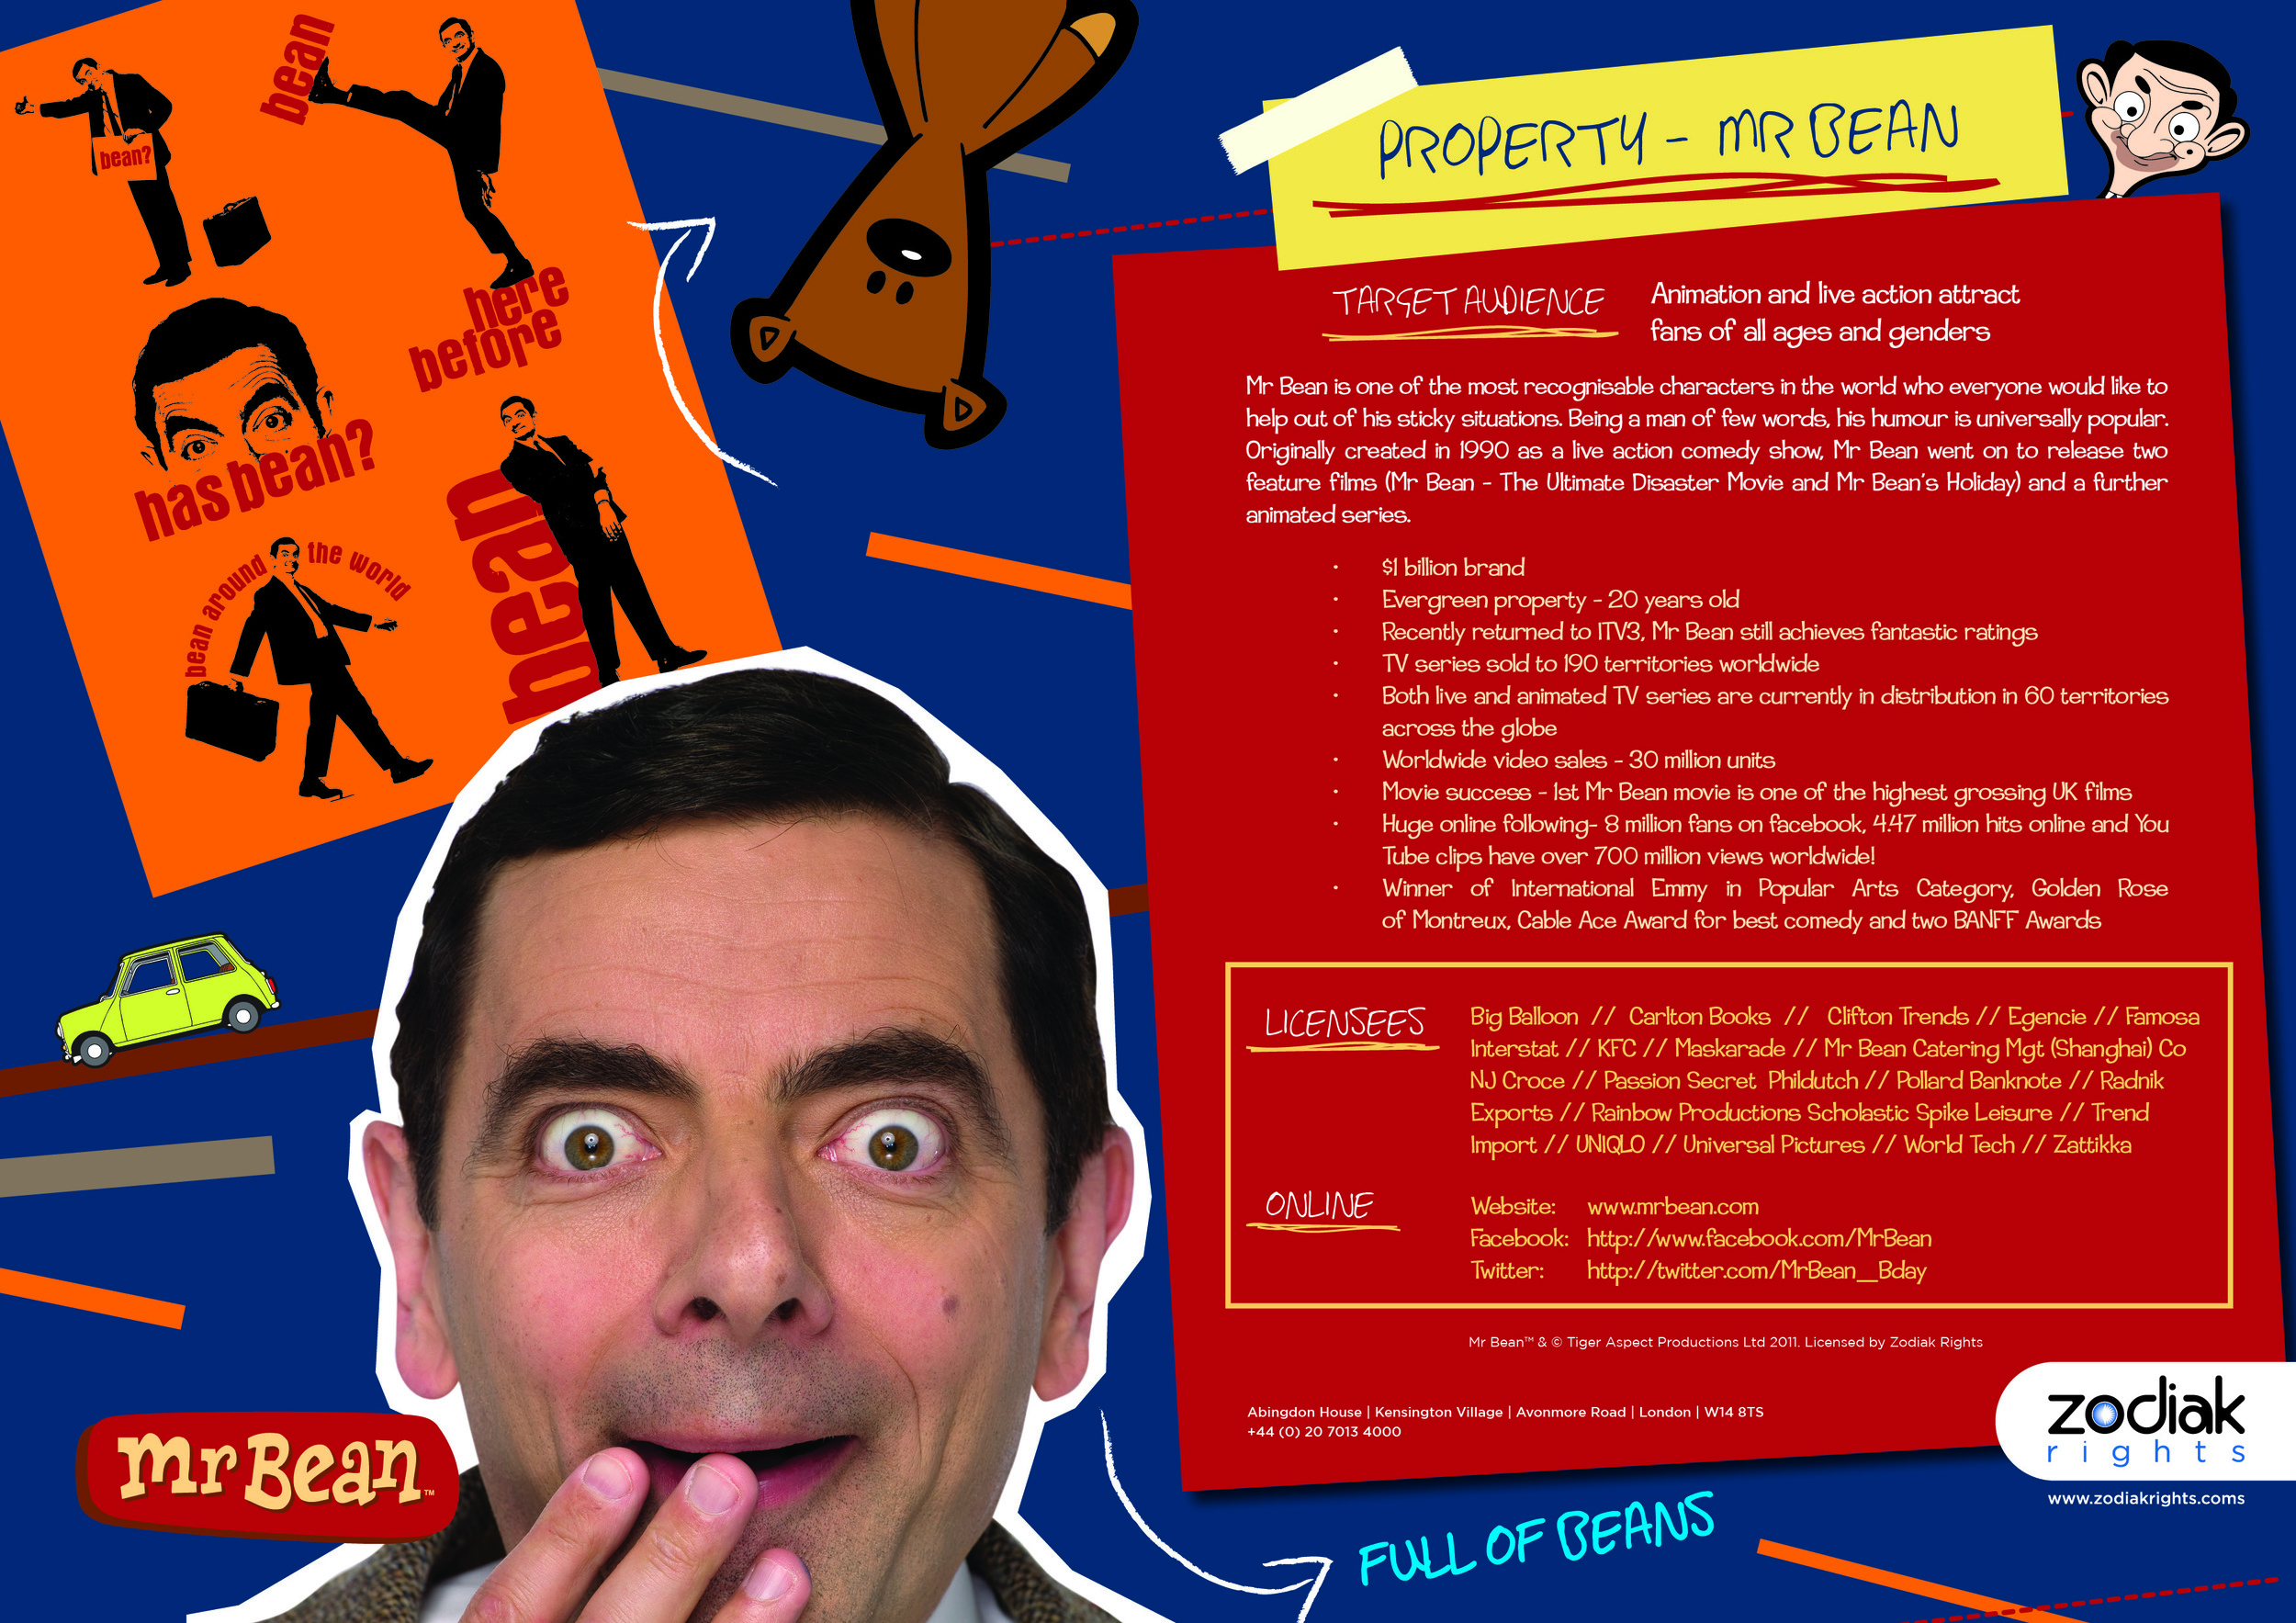 mr bean source book 2011.jpg